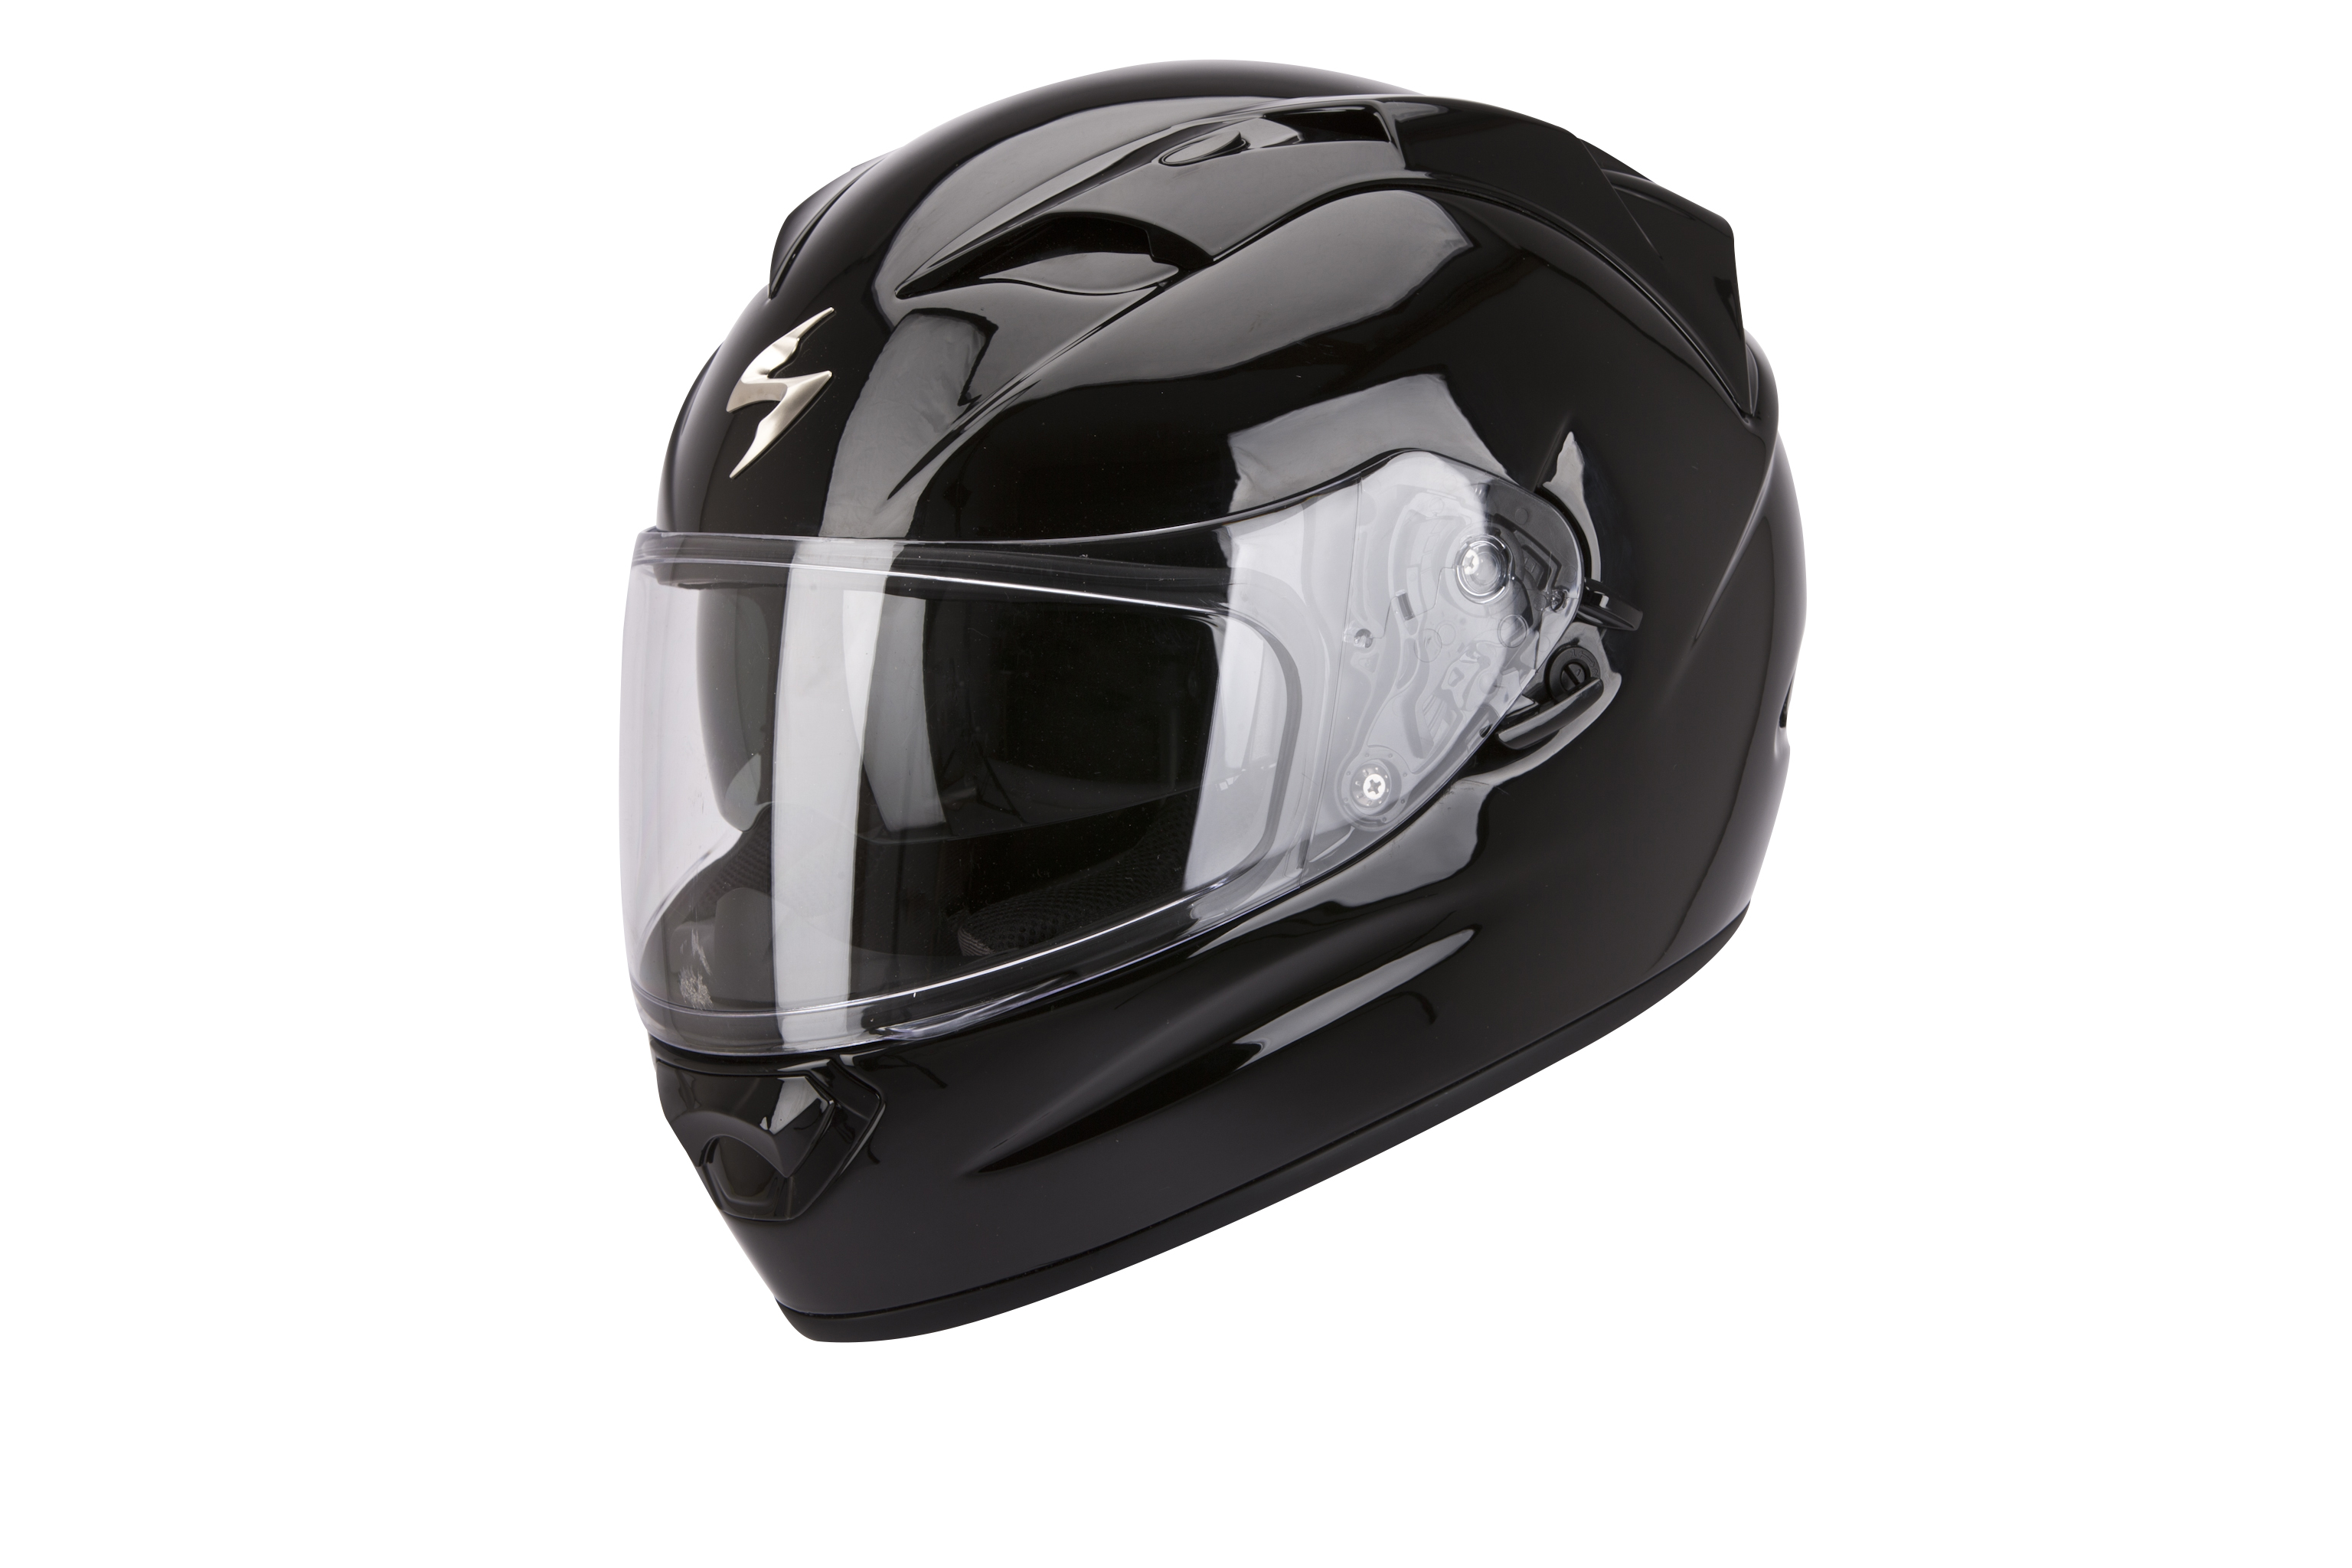 nouveau casque 2015 le scorpion exo 1200 air arrive. Black Bedroom Furniture Sets. Home Design Ideas